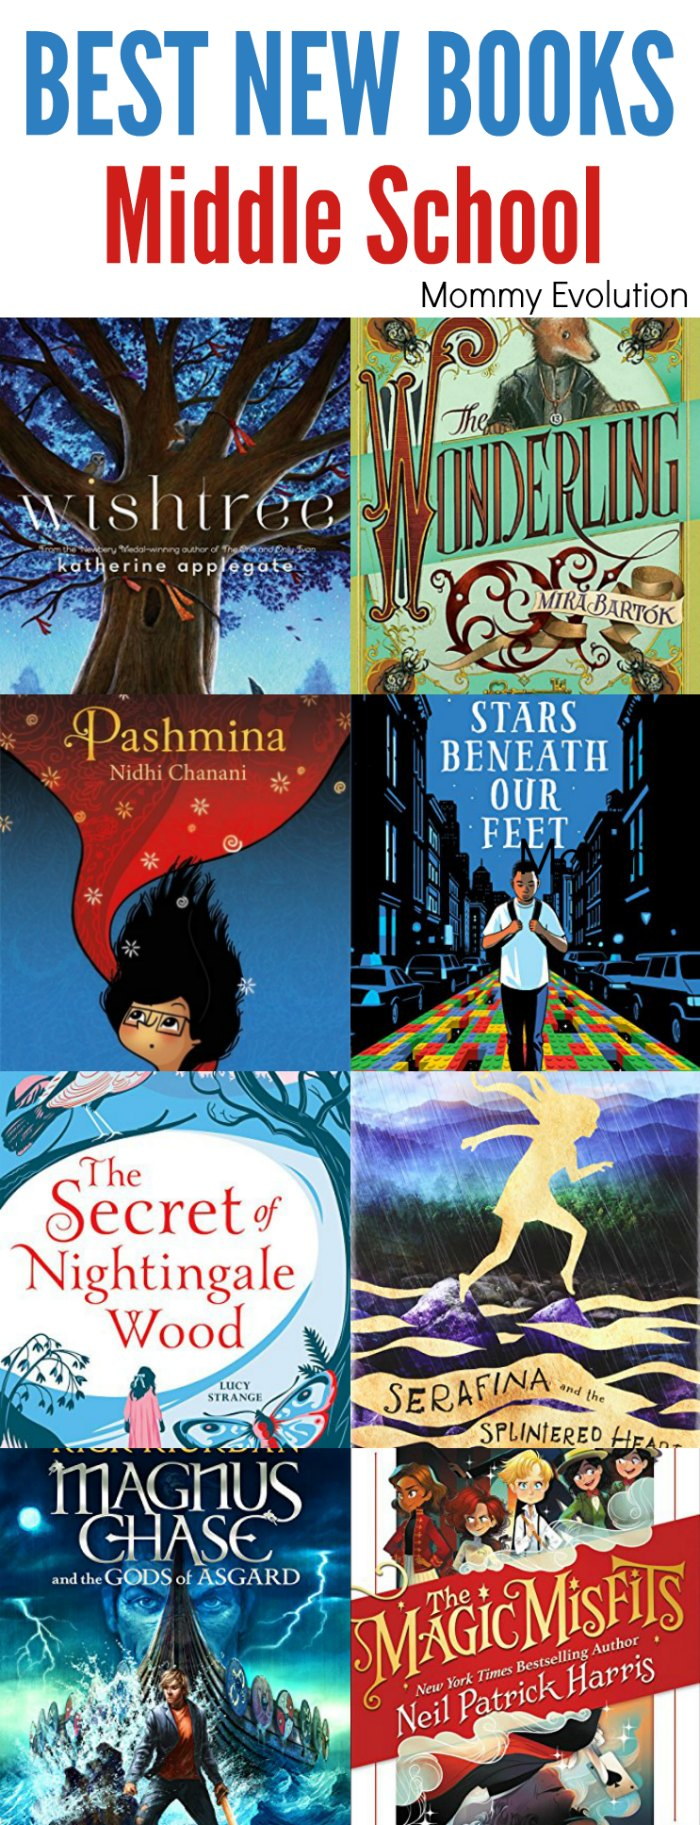 Best New Middle School Books to Read This Year! | Mommy Evolution